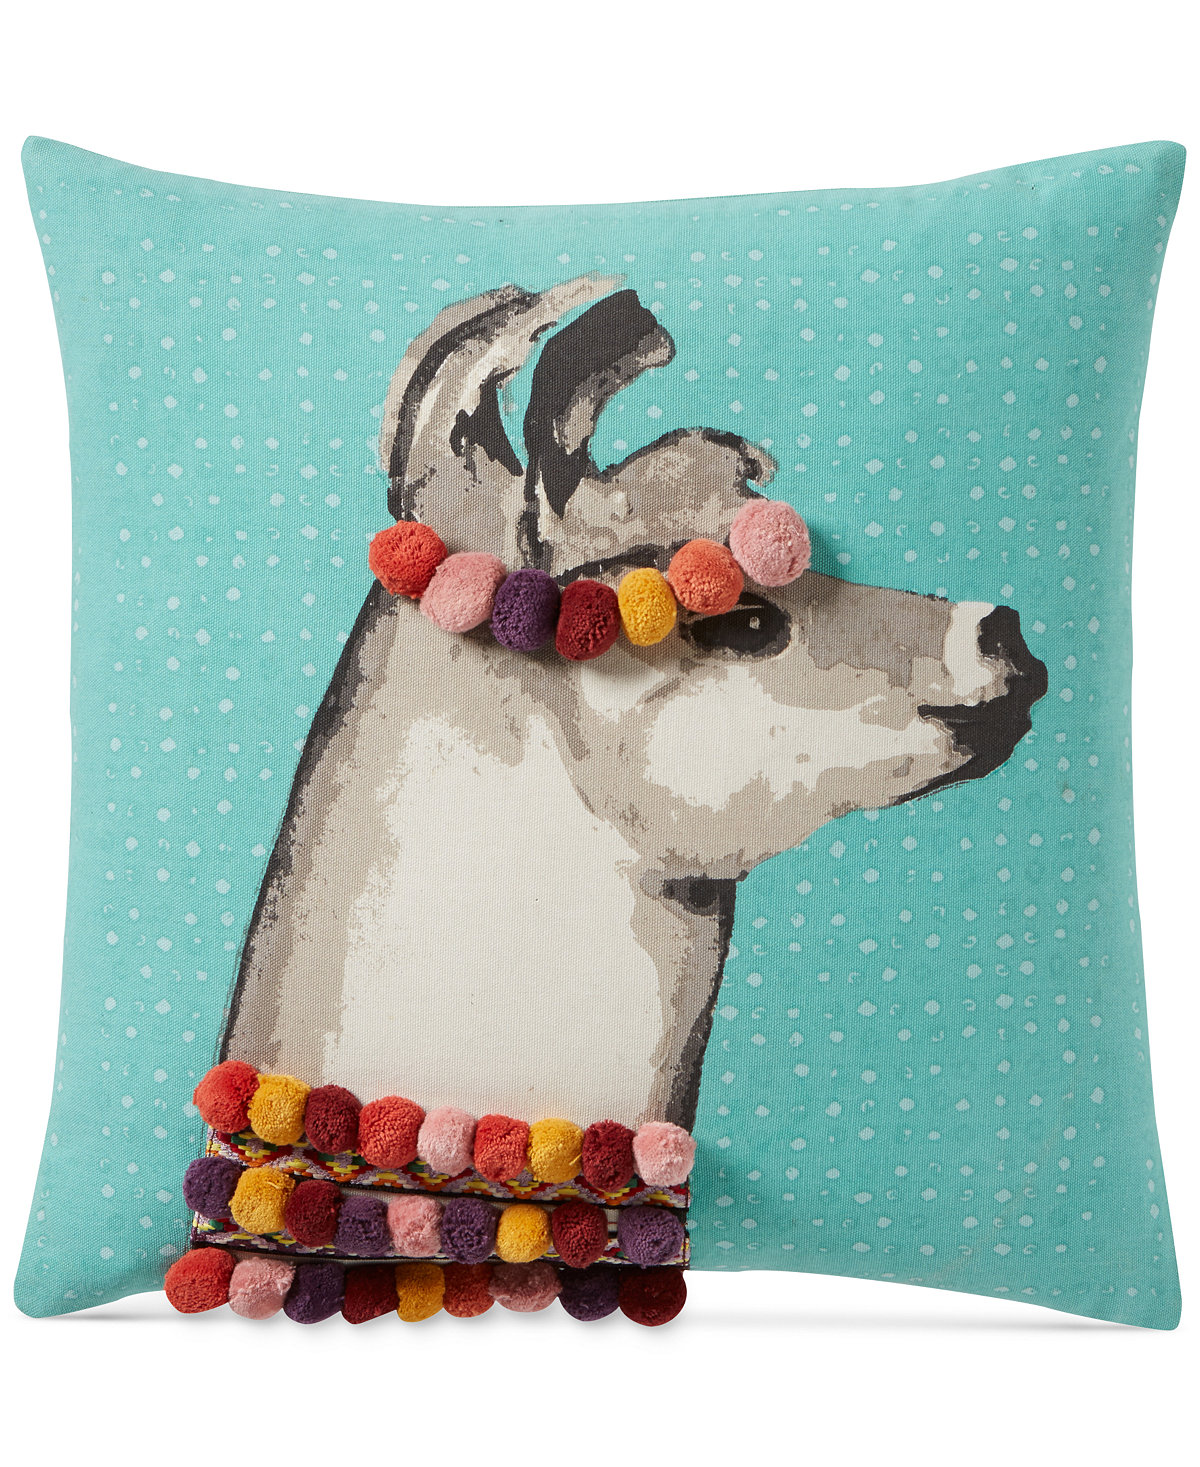 """Everything Turquoise: Pretty Llama 18"""" Square Decorative Pillow"""